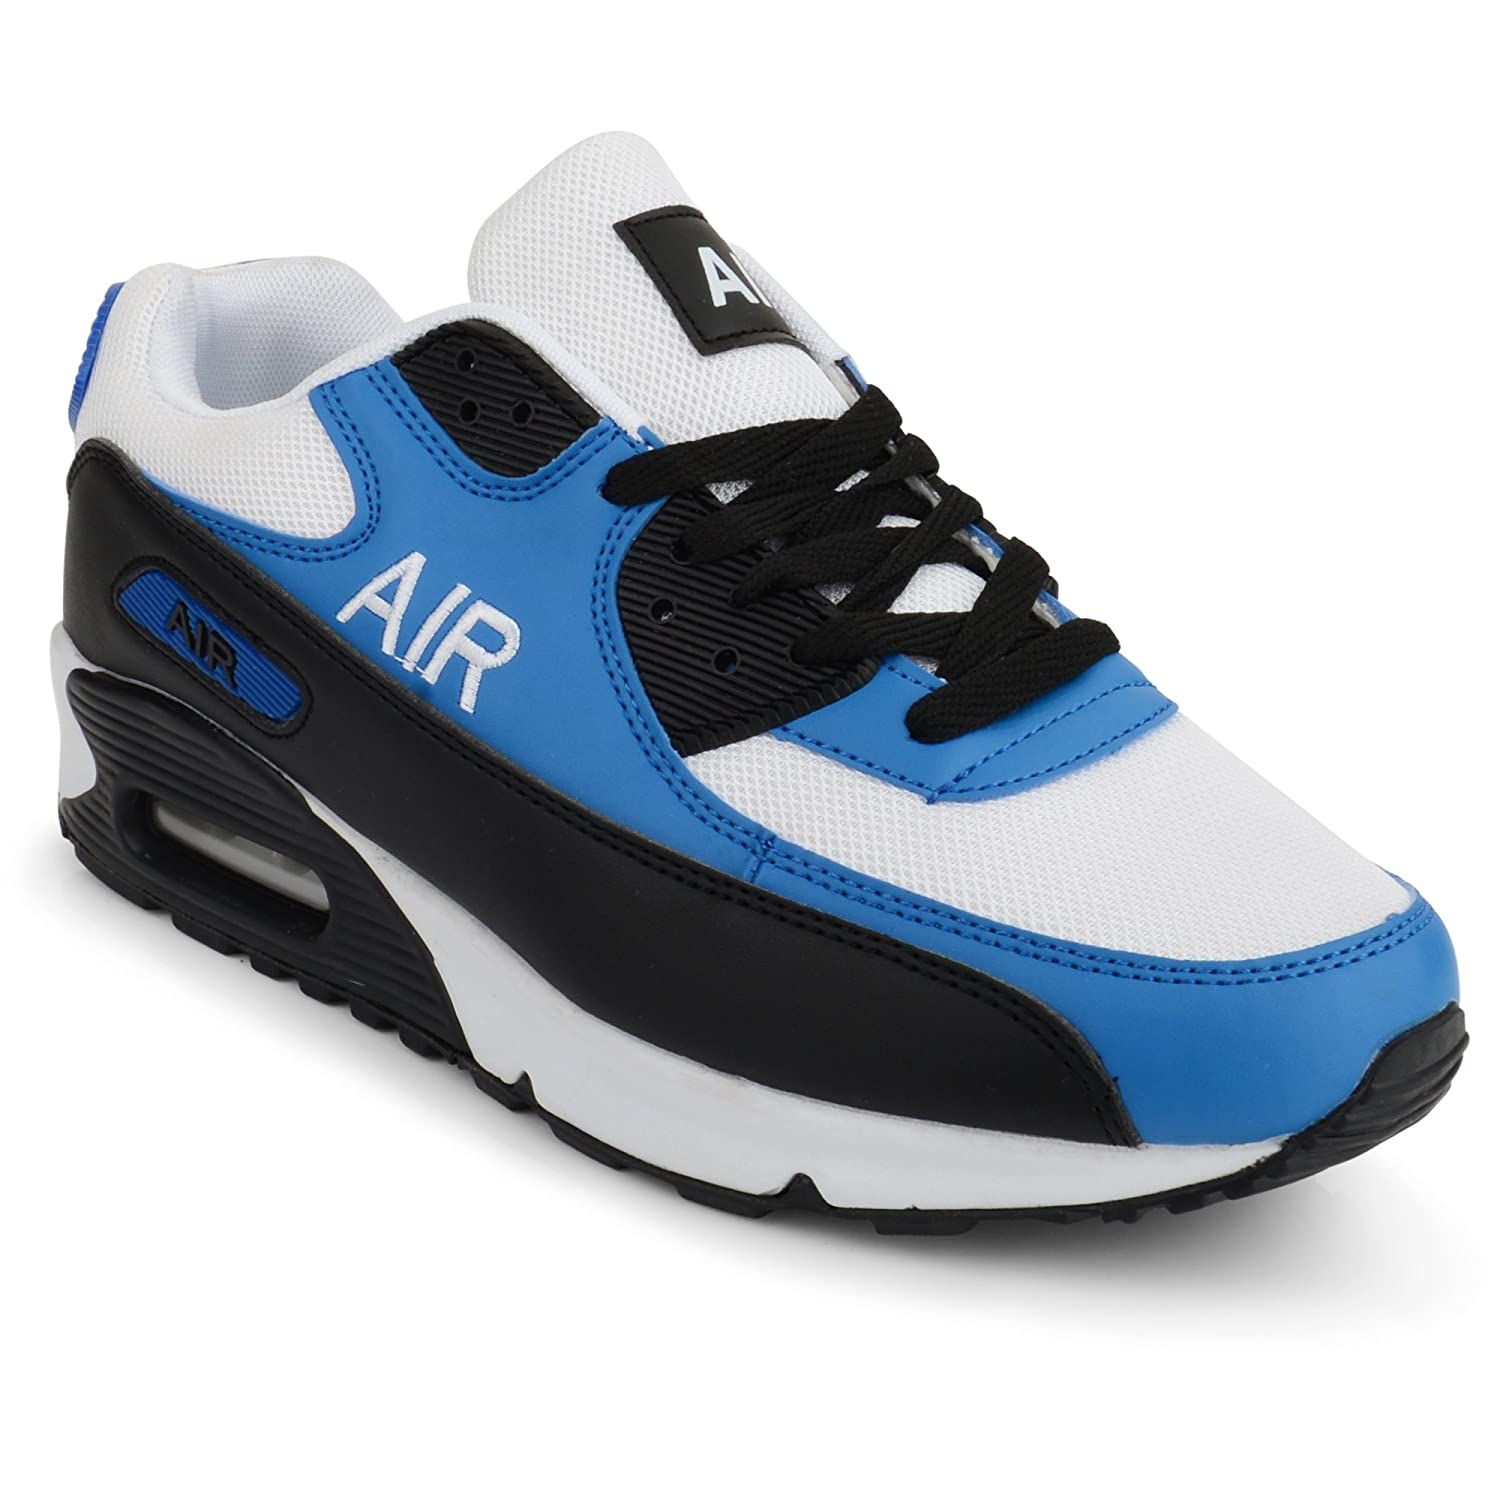 Mens Shock Absorbing Air Running Trainers Jogging Gym Fitness Trainer Shoes Sizes 7-12 UK